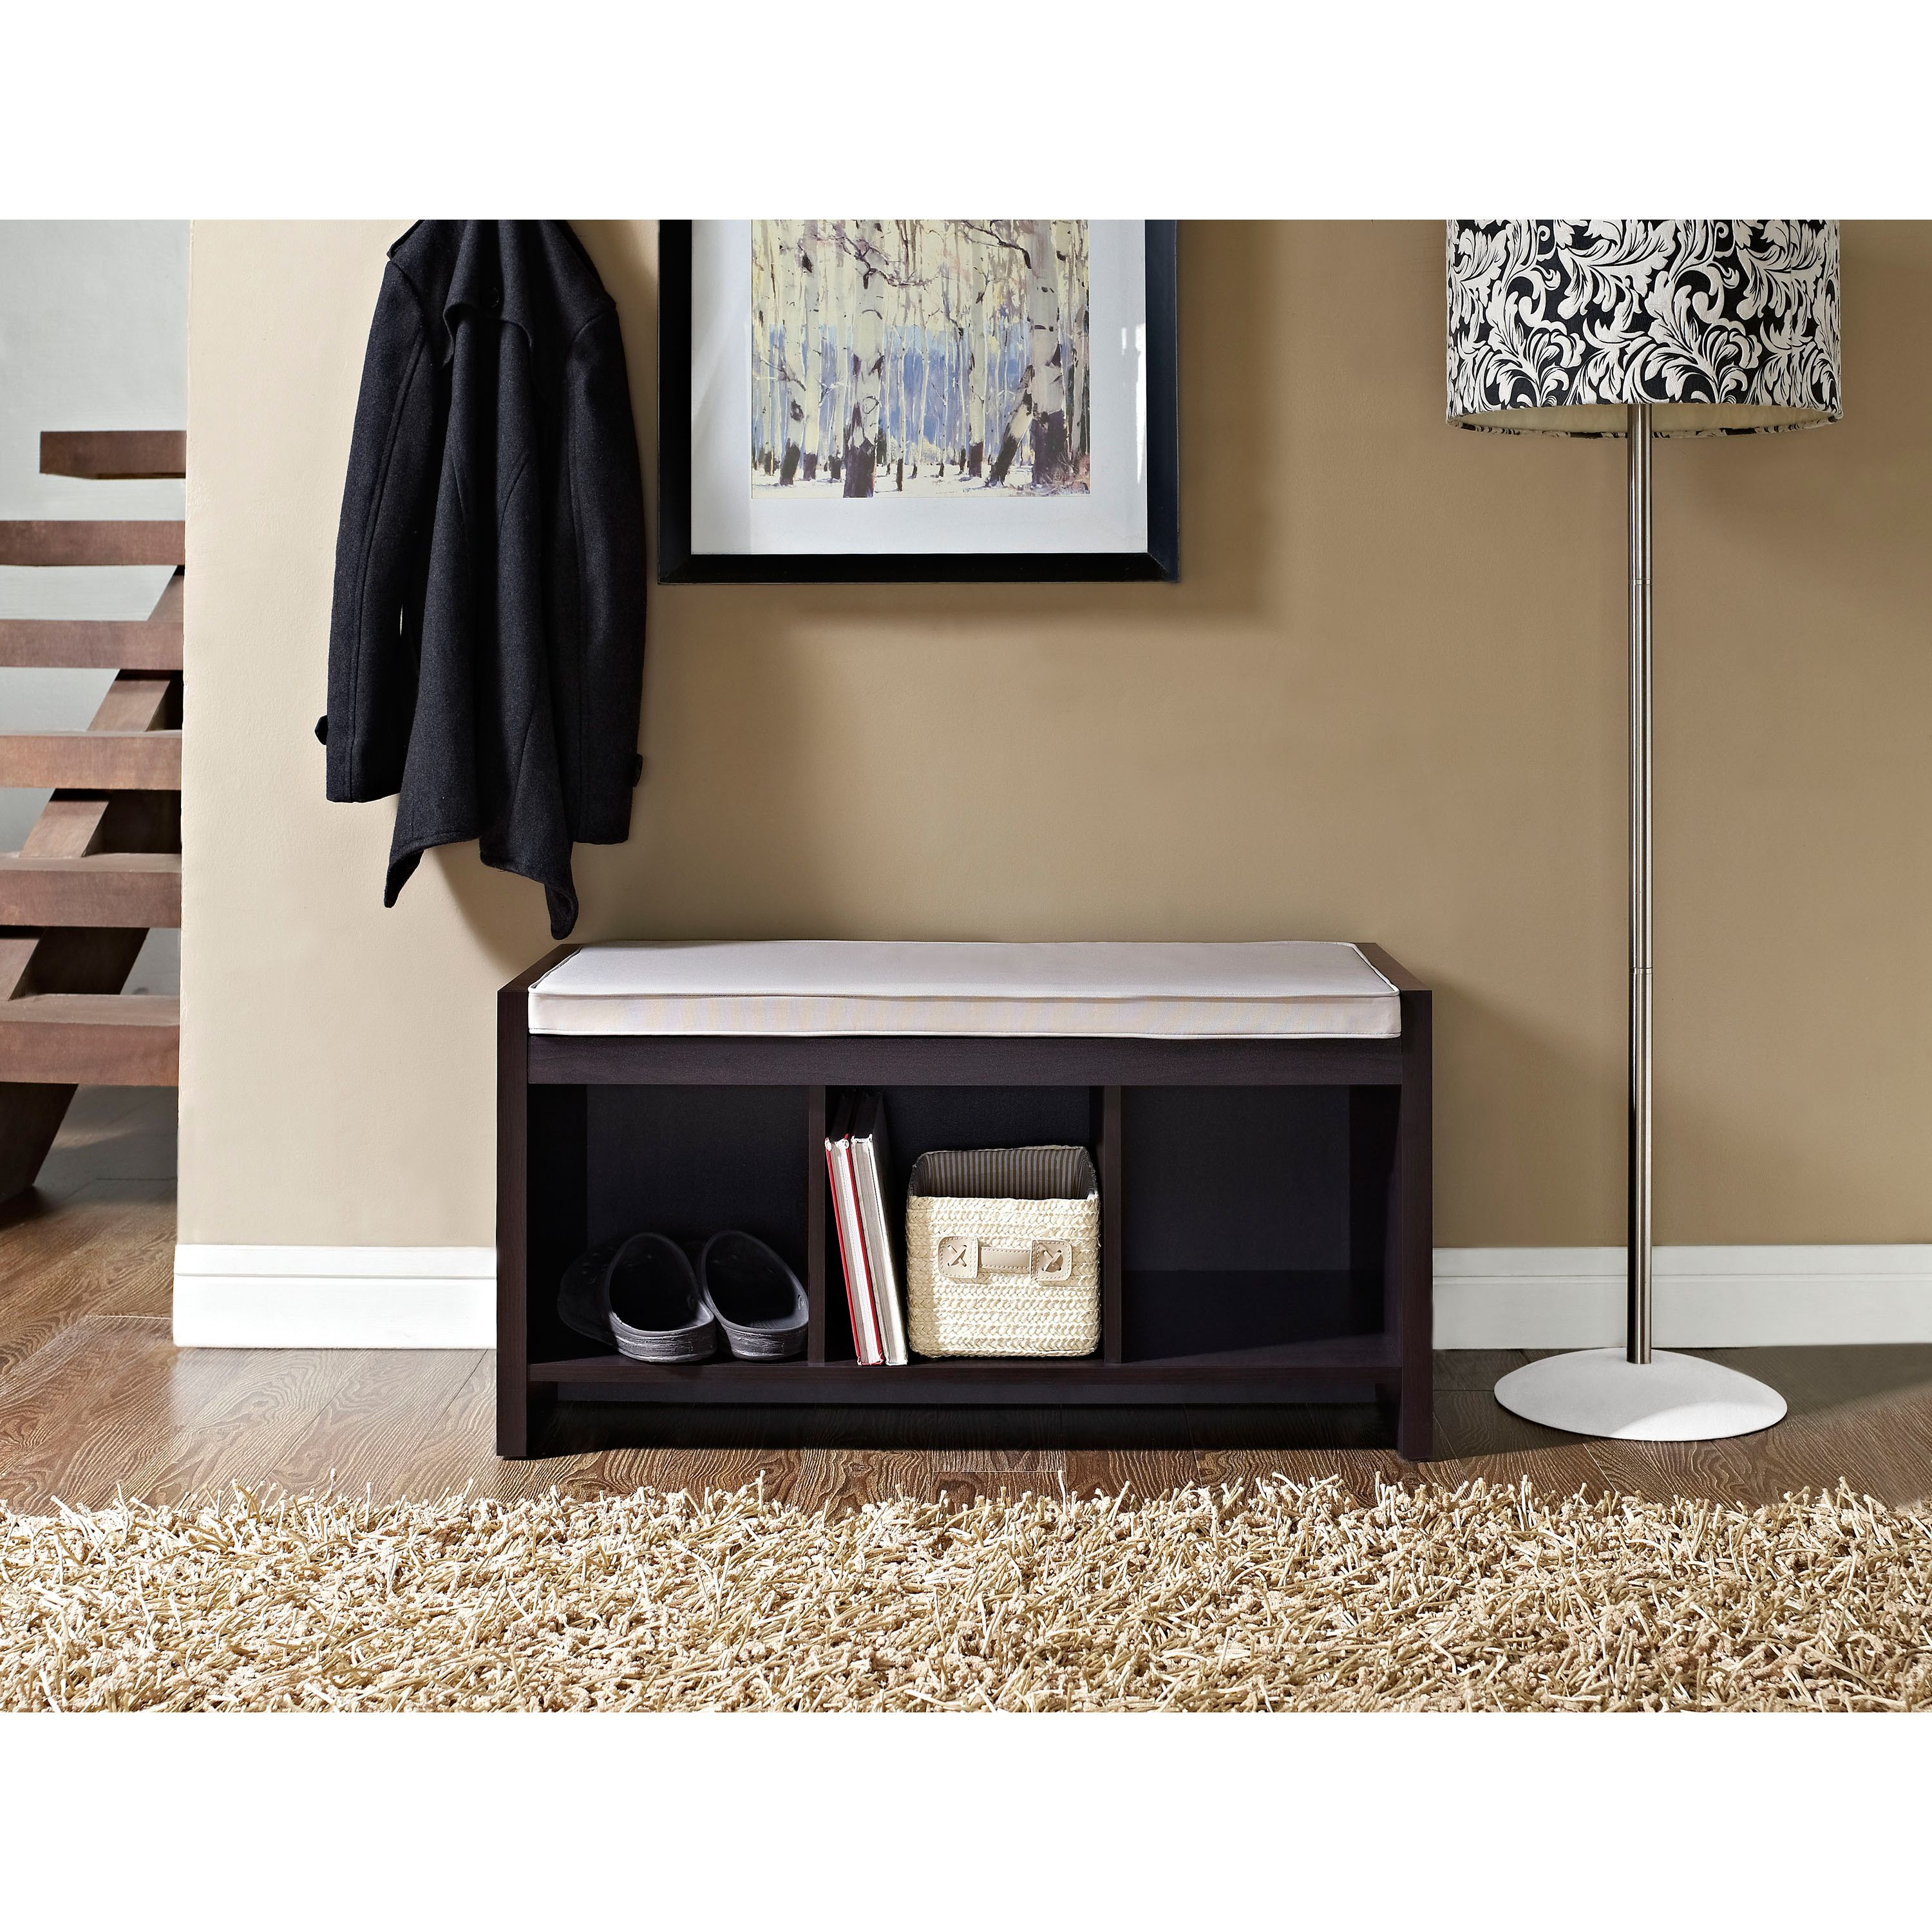 Add seating and function to any room with this storage bench with ...